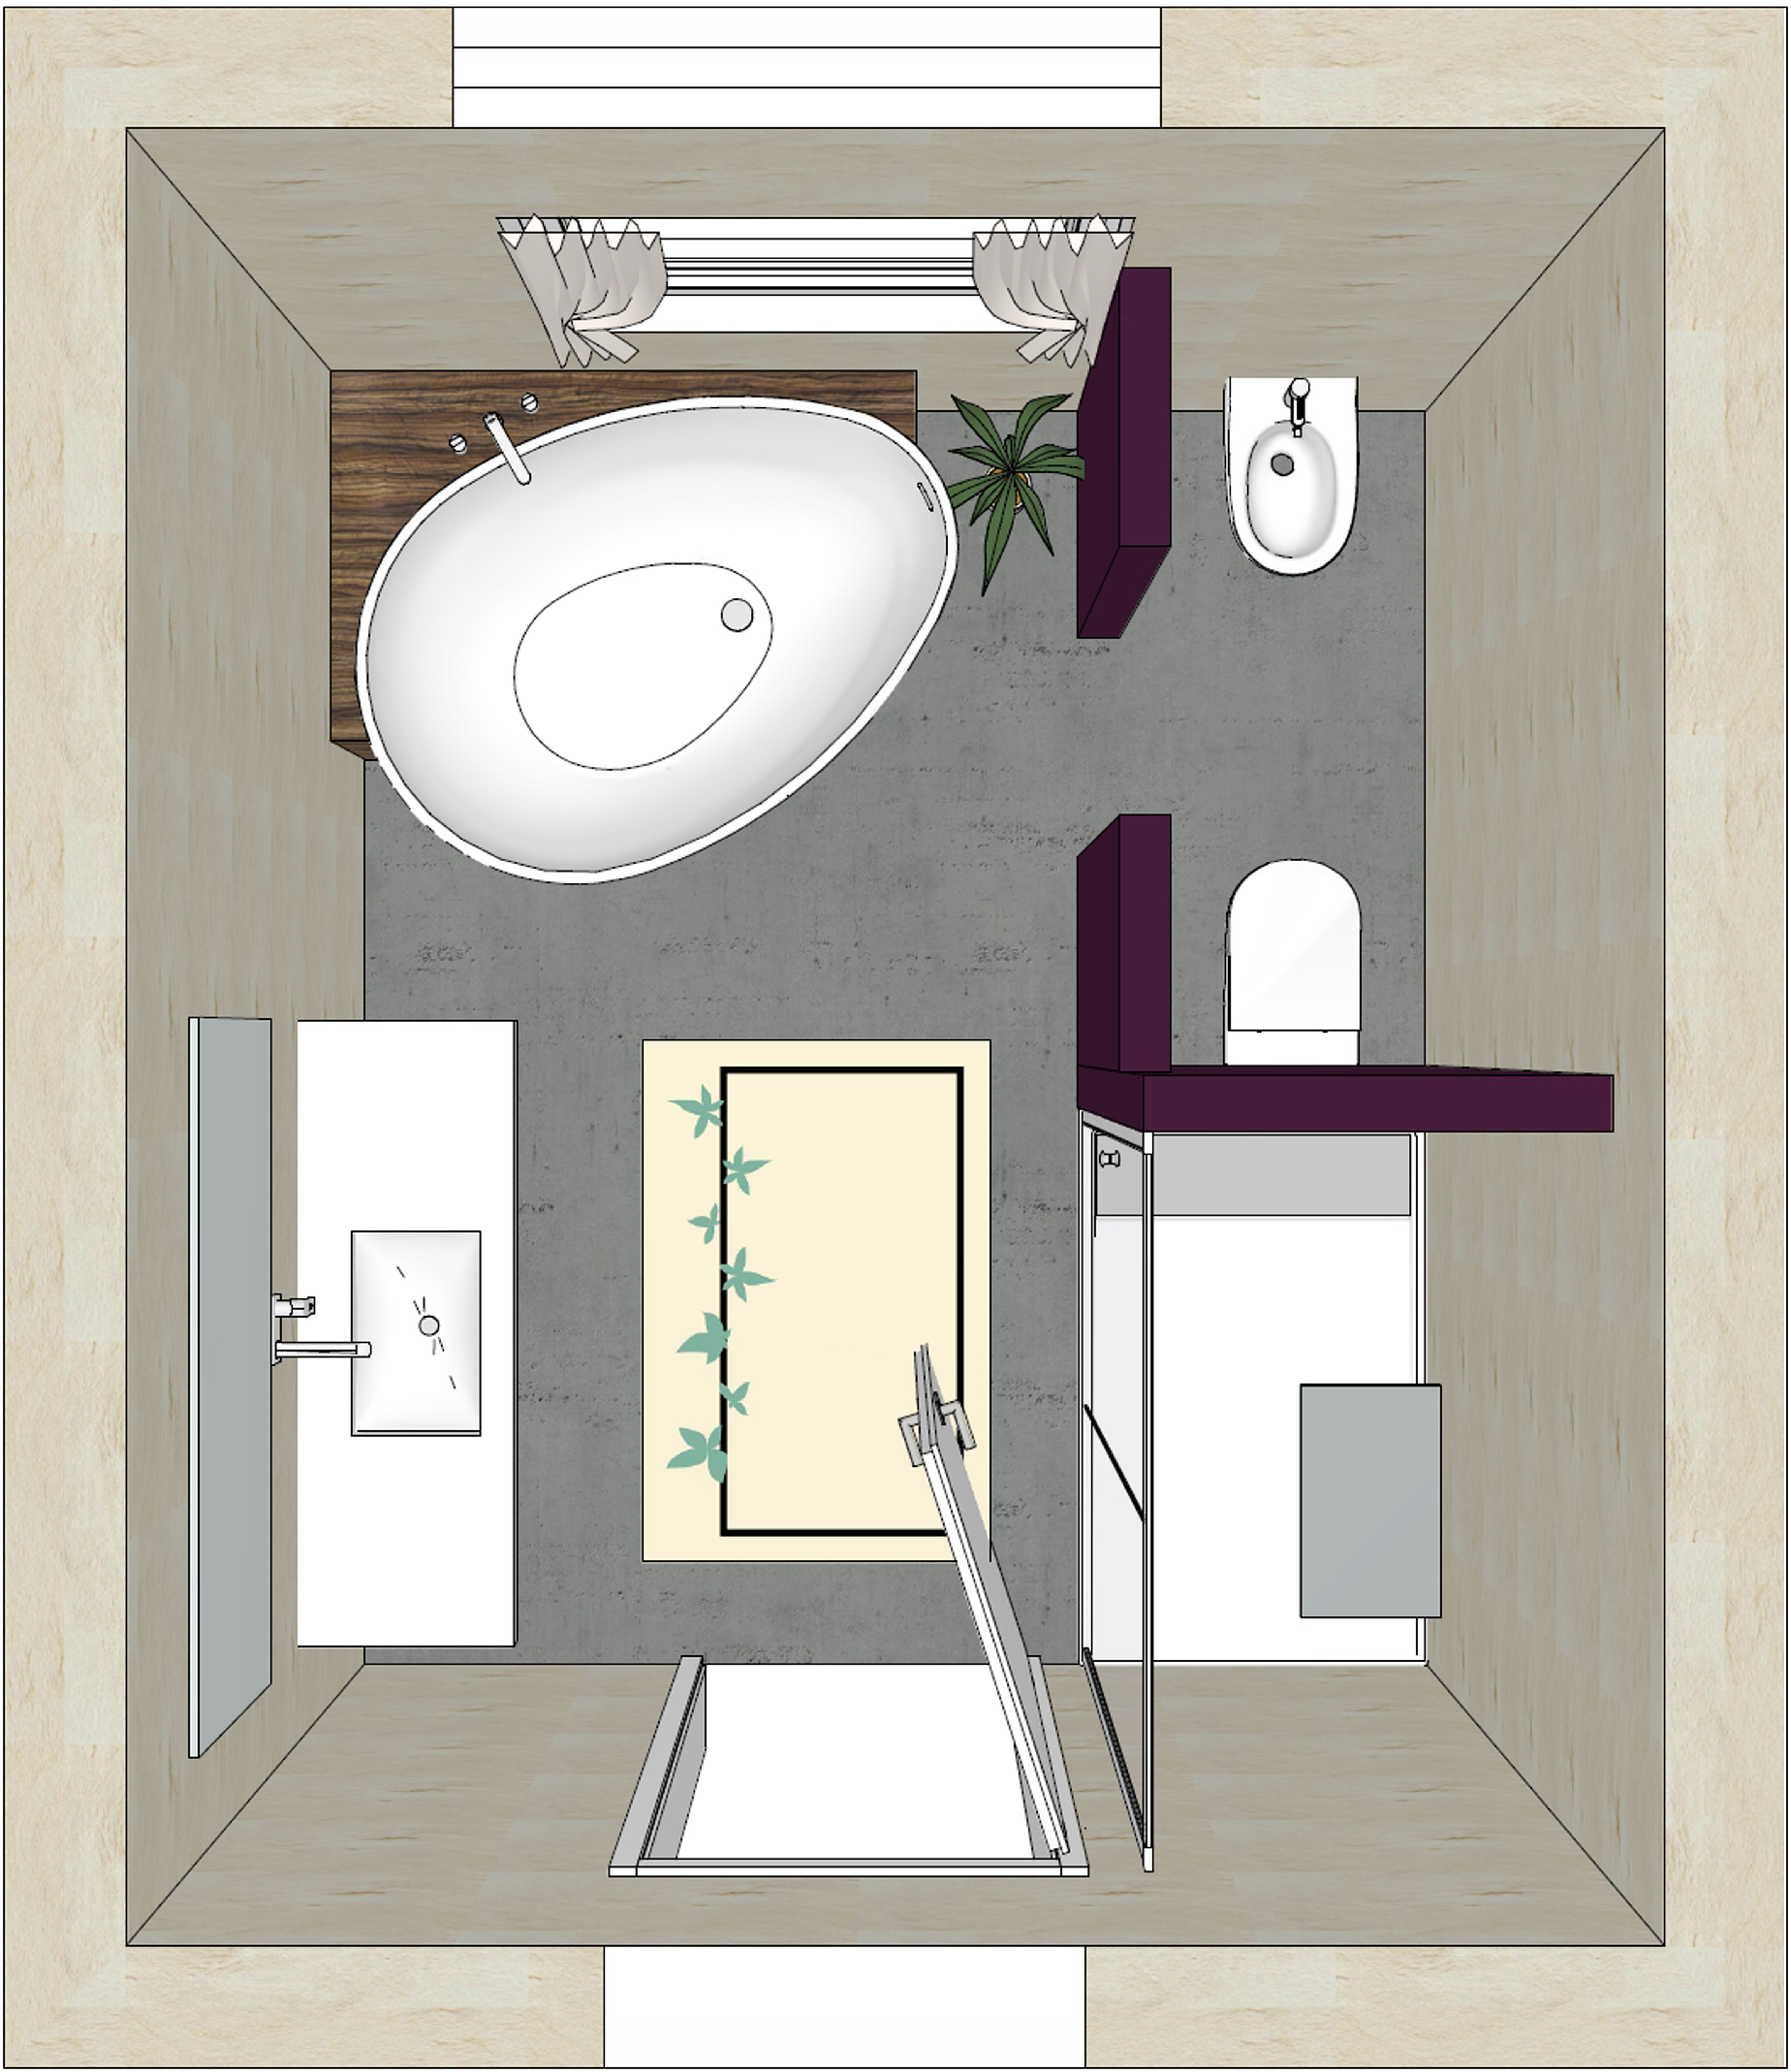 Is this layout feasible for our main bathroom on the second floor?I'd like  to have a double sink :)